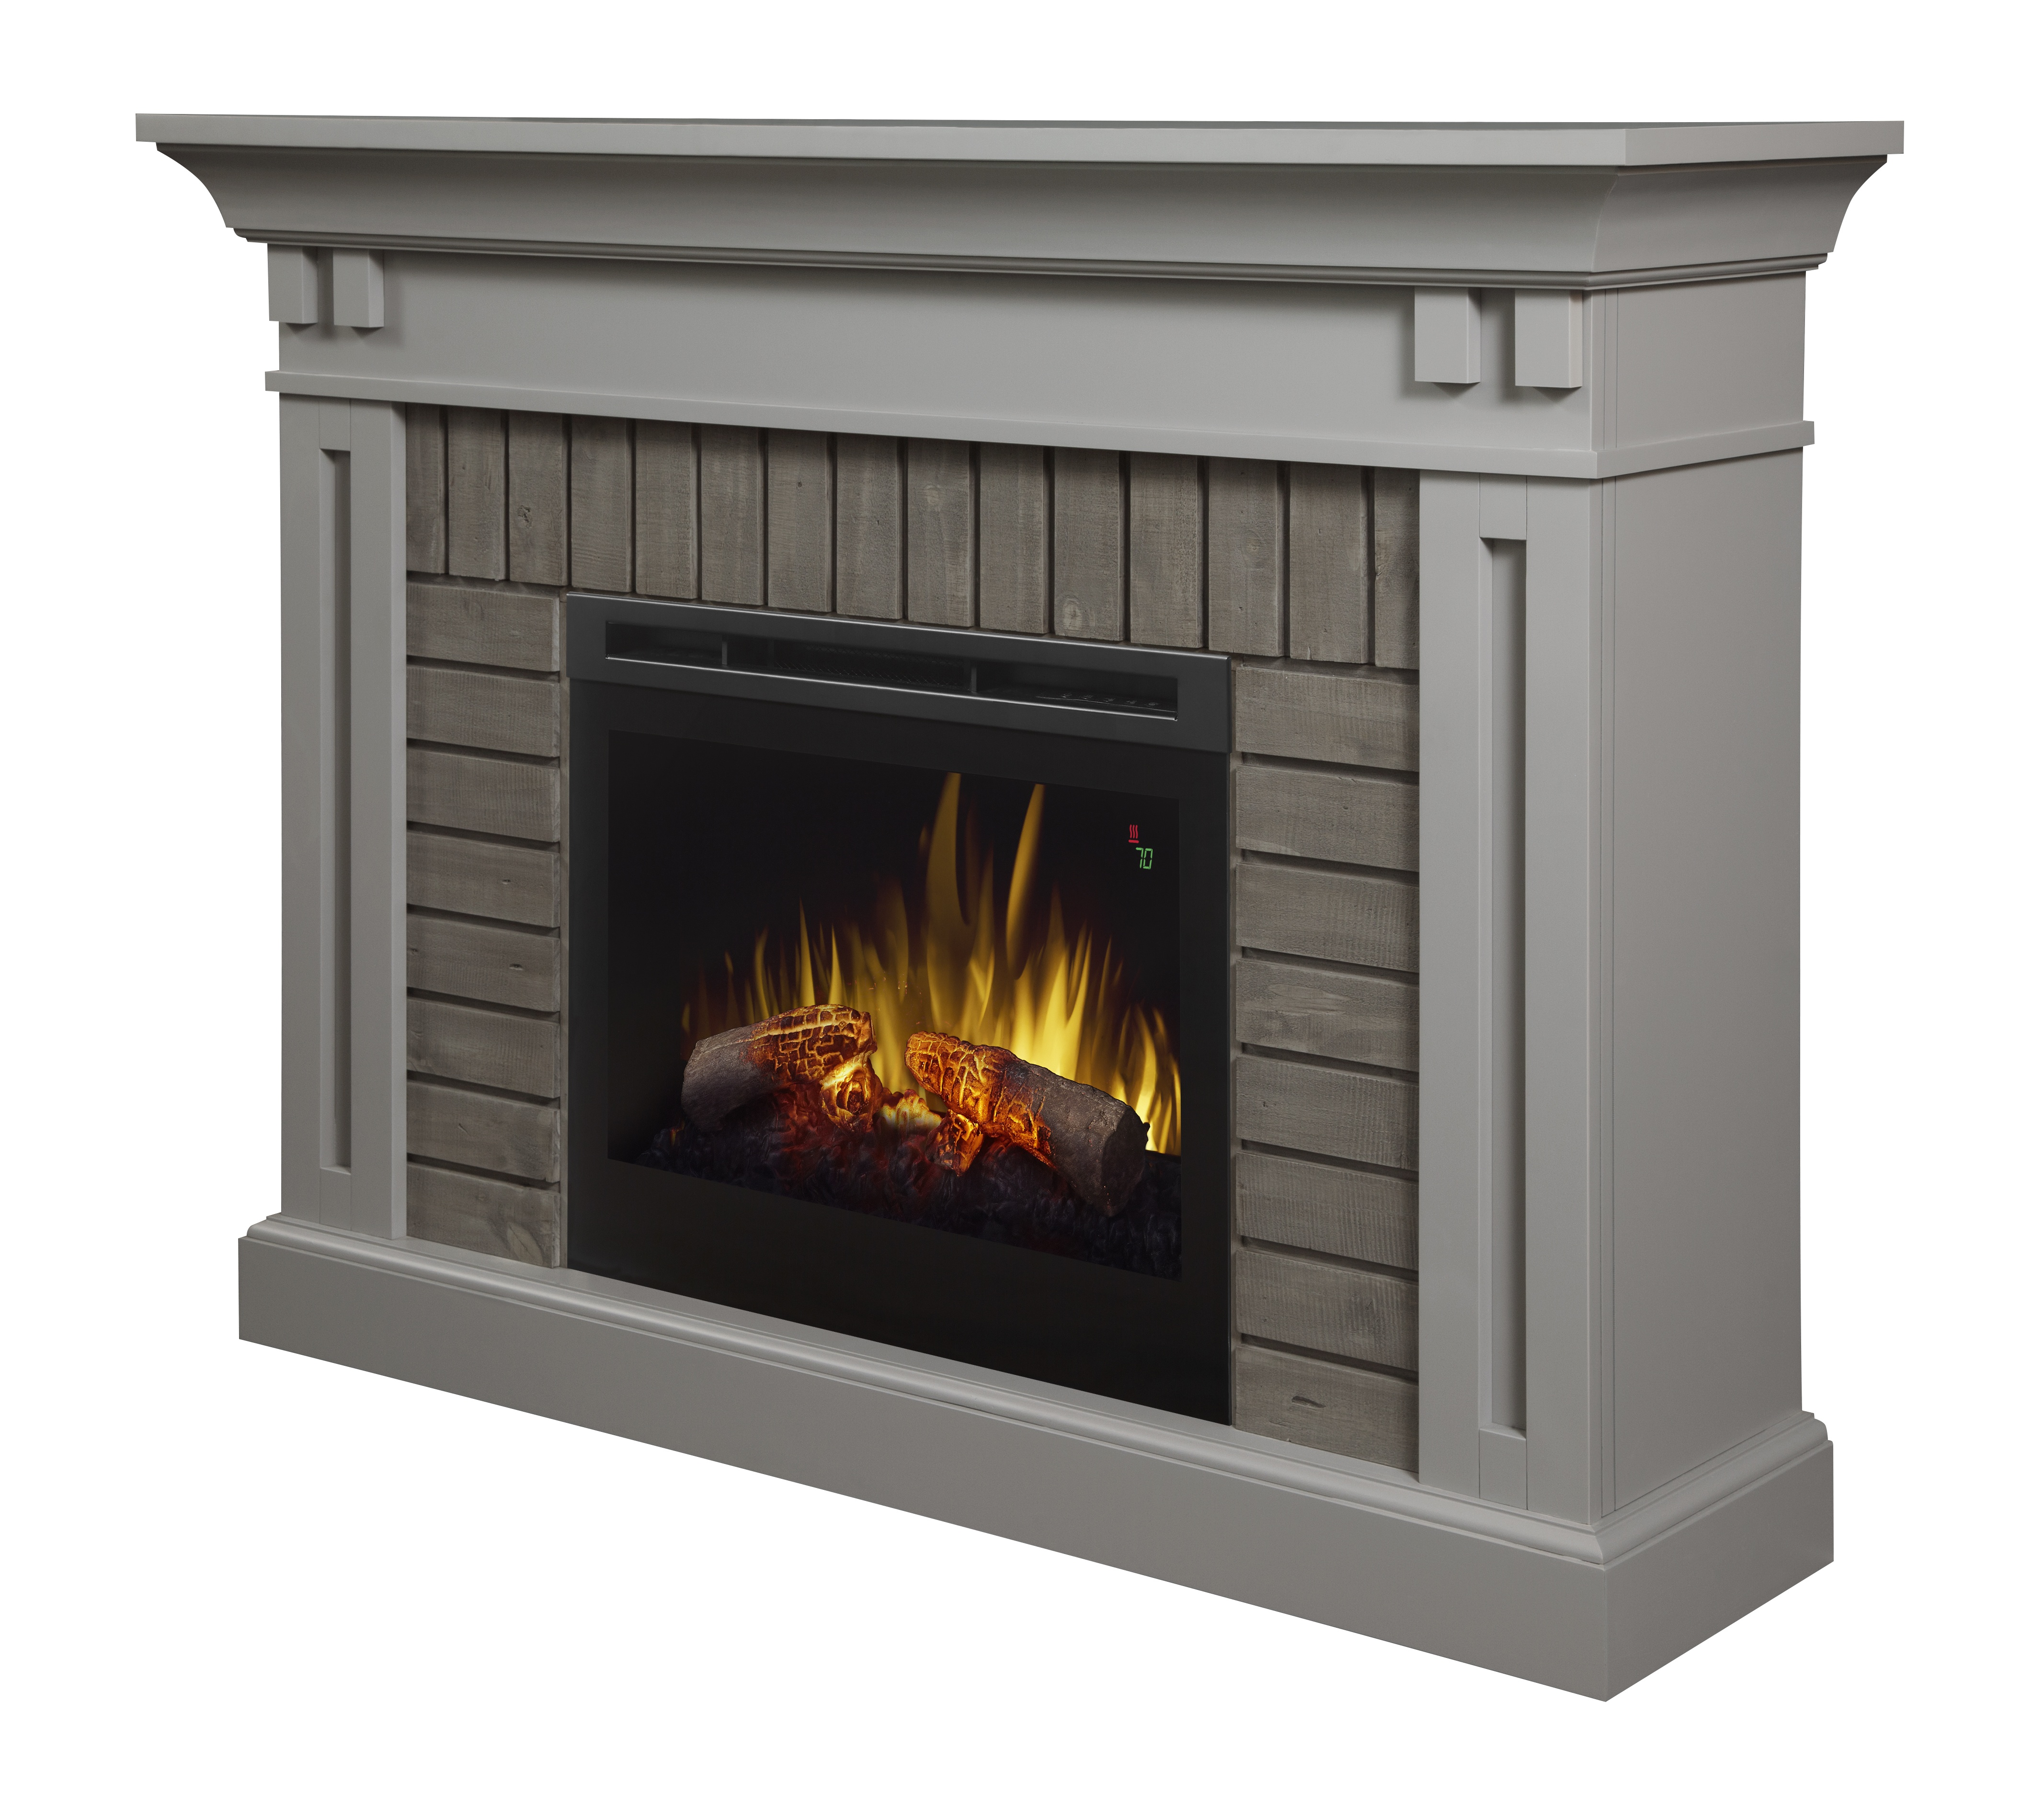 Dimplex madison gds28l8 1968sg electric fireplace with - Going to bed with embers in fireplace ...